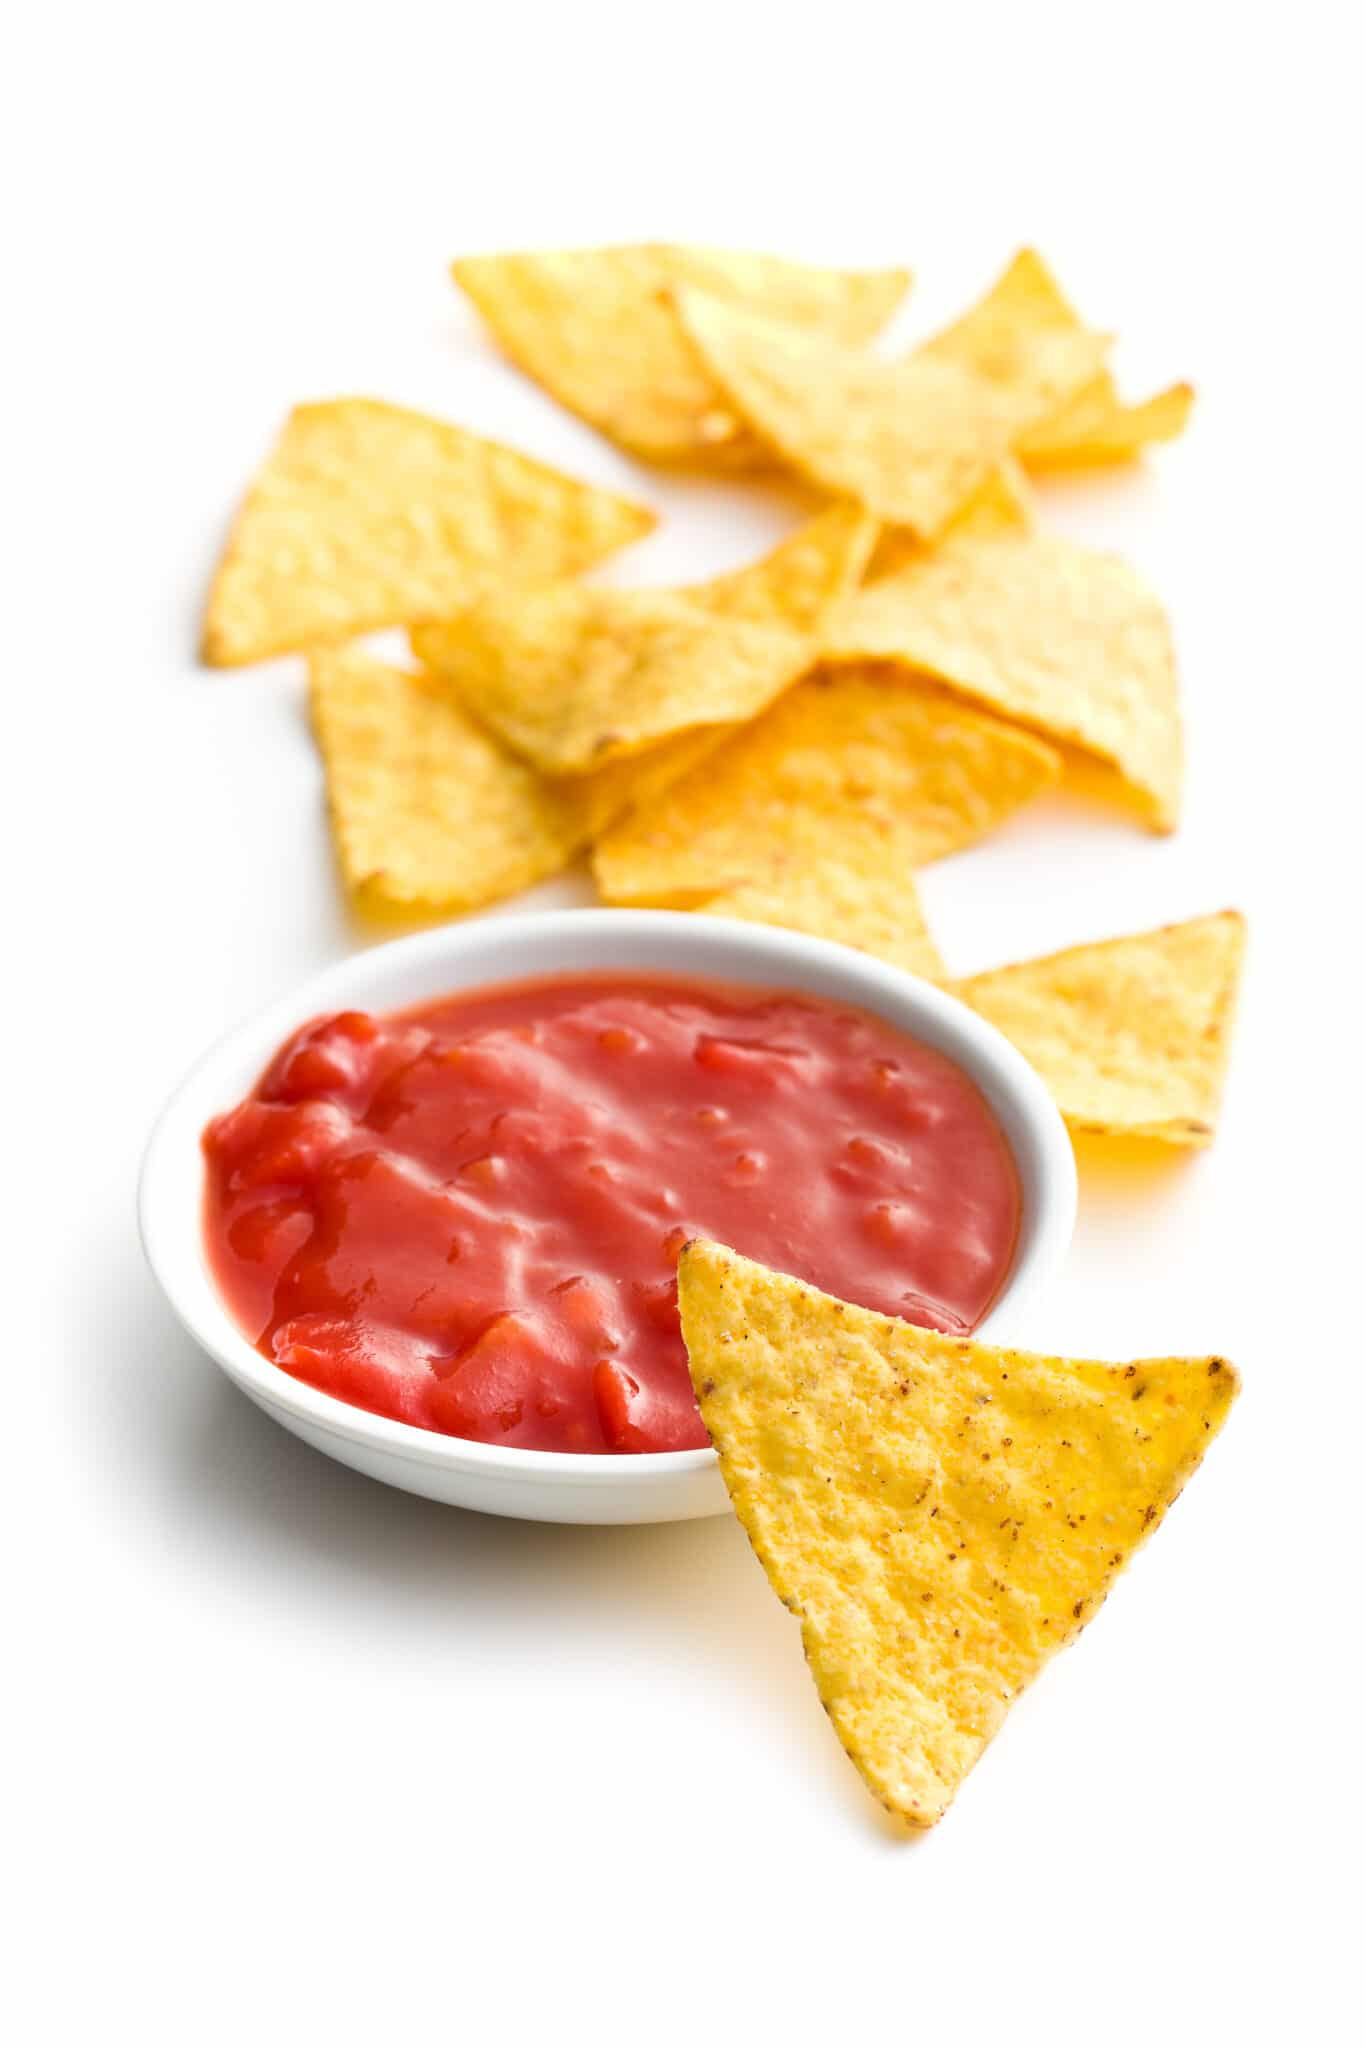 Tortilla chips and salsa.